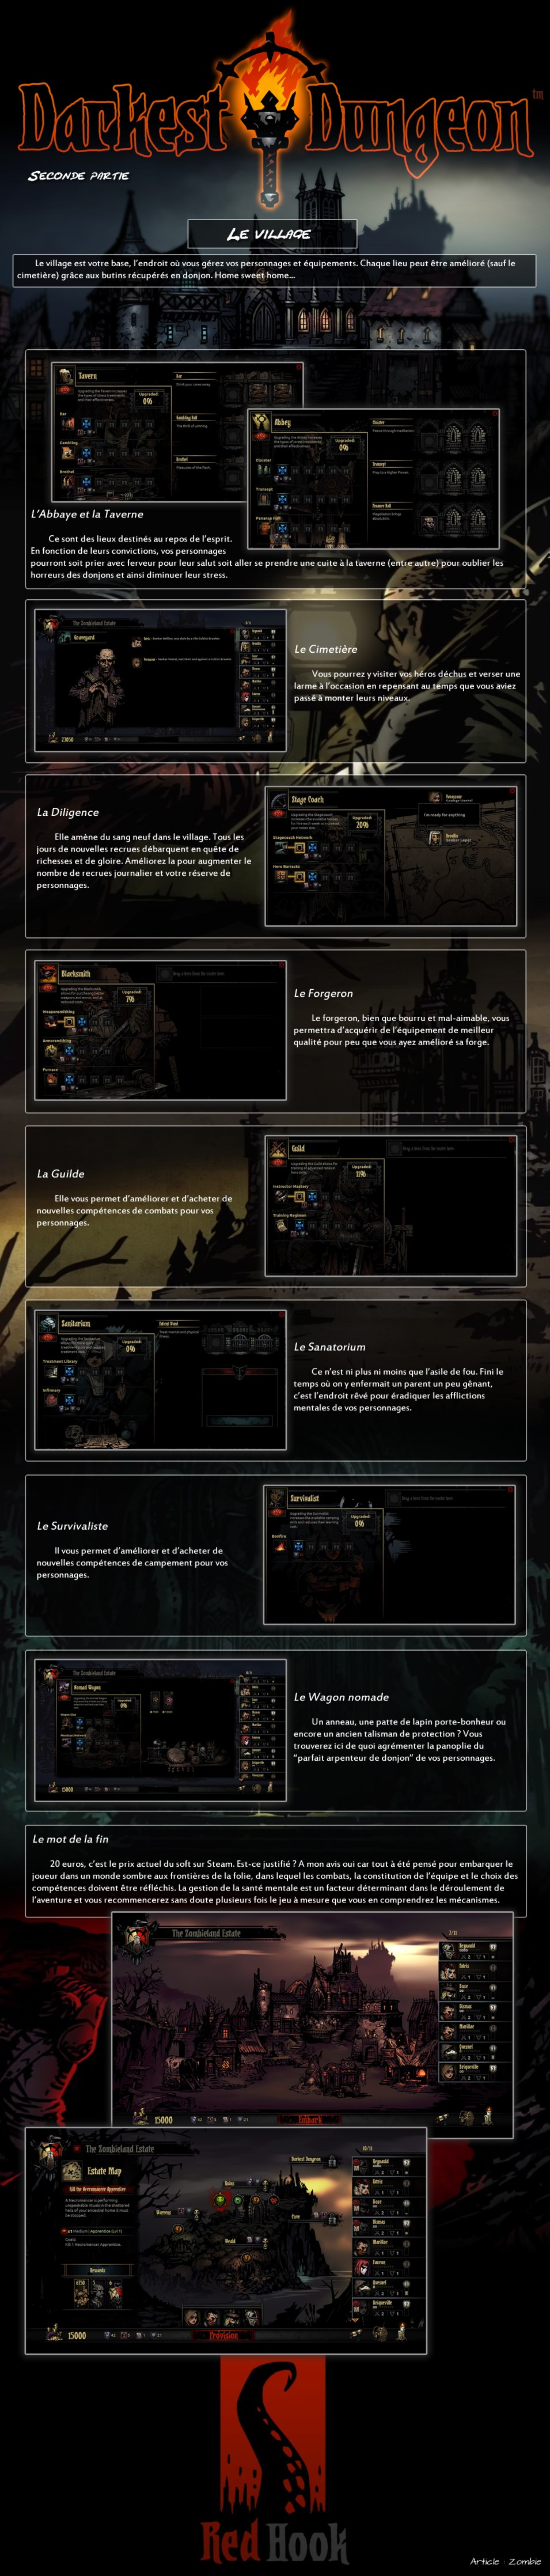 Article-Darkest-Dungeon-Partie-2